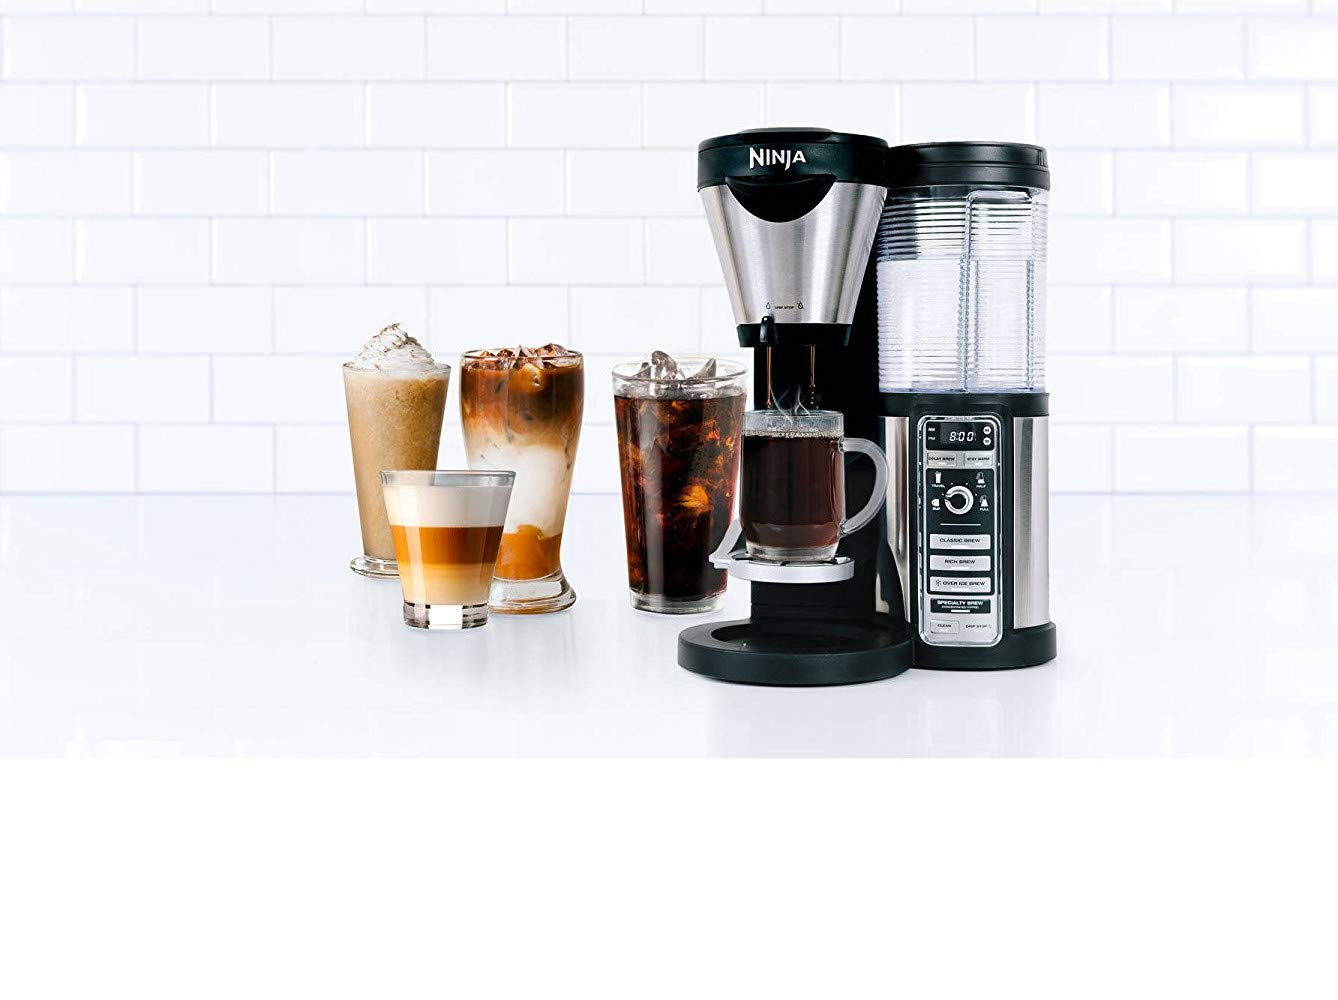 Amazon.com: Ninja Coffee Bar con jarra de vidrio y auto-iq ...